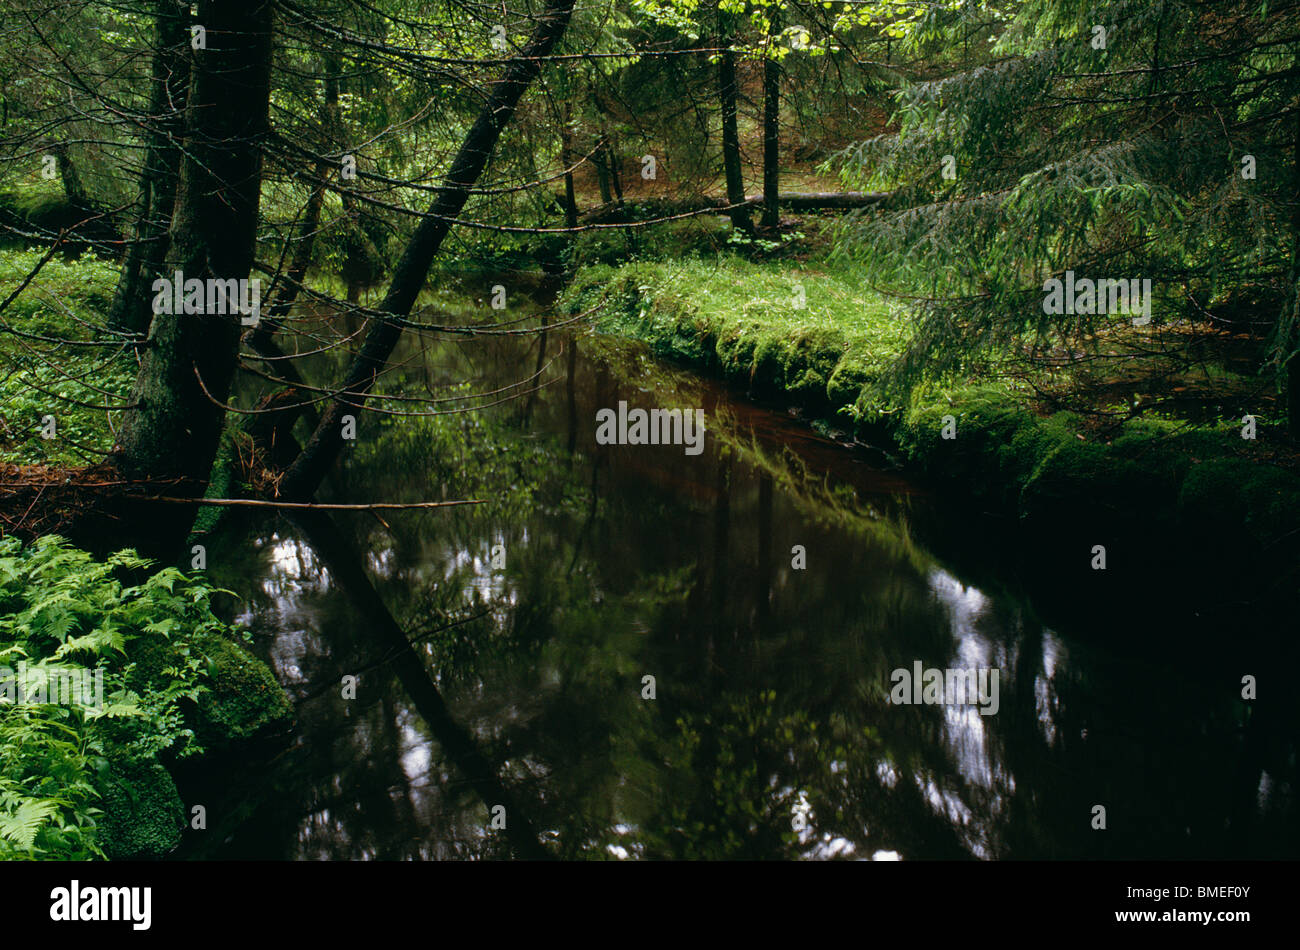 View of stream passing through coniferous forest - Stock Image